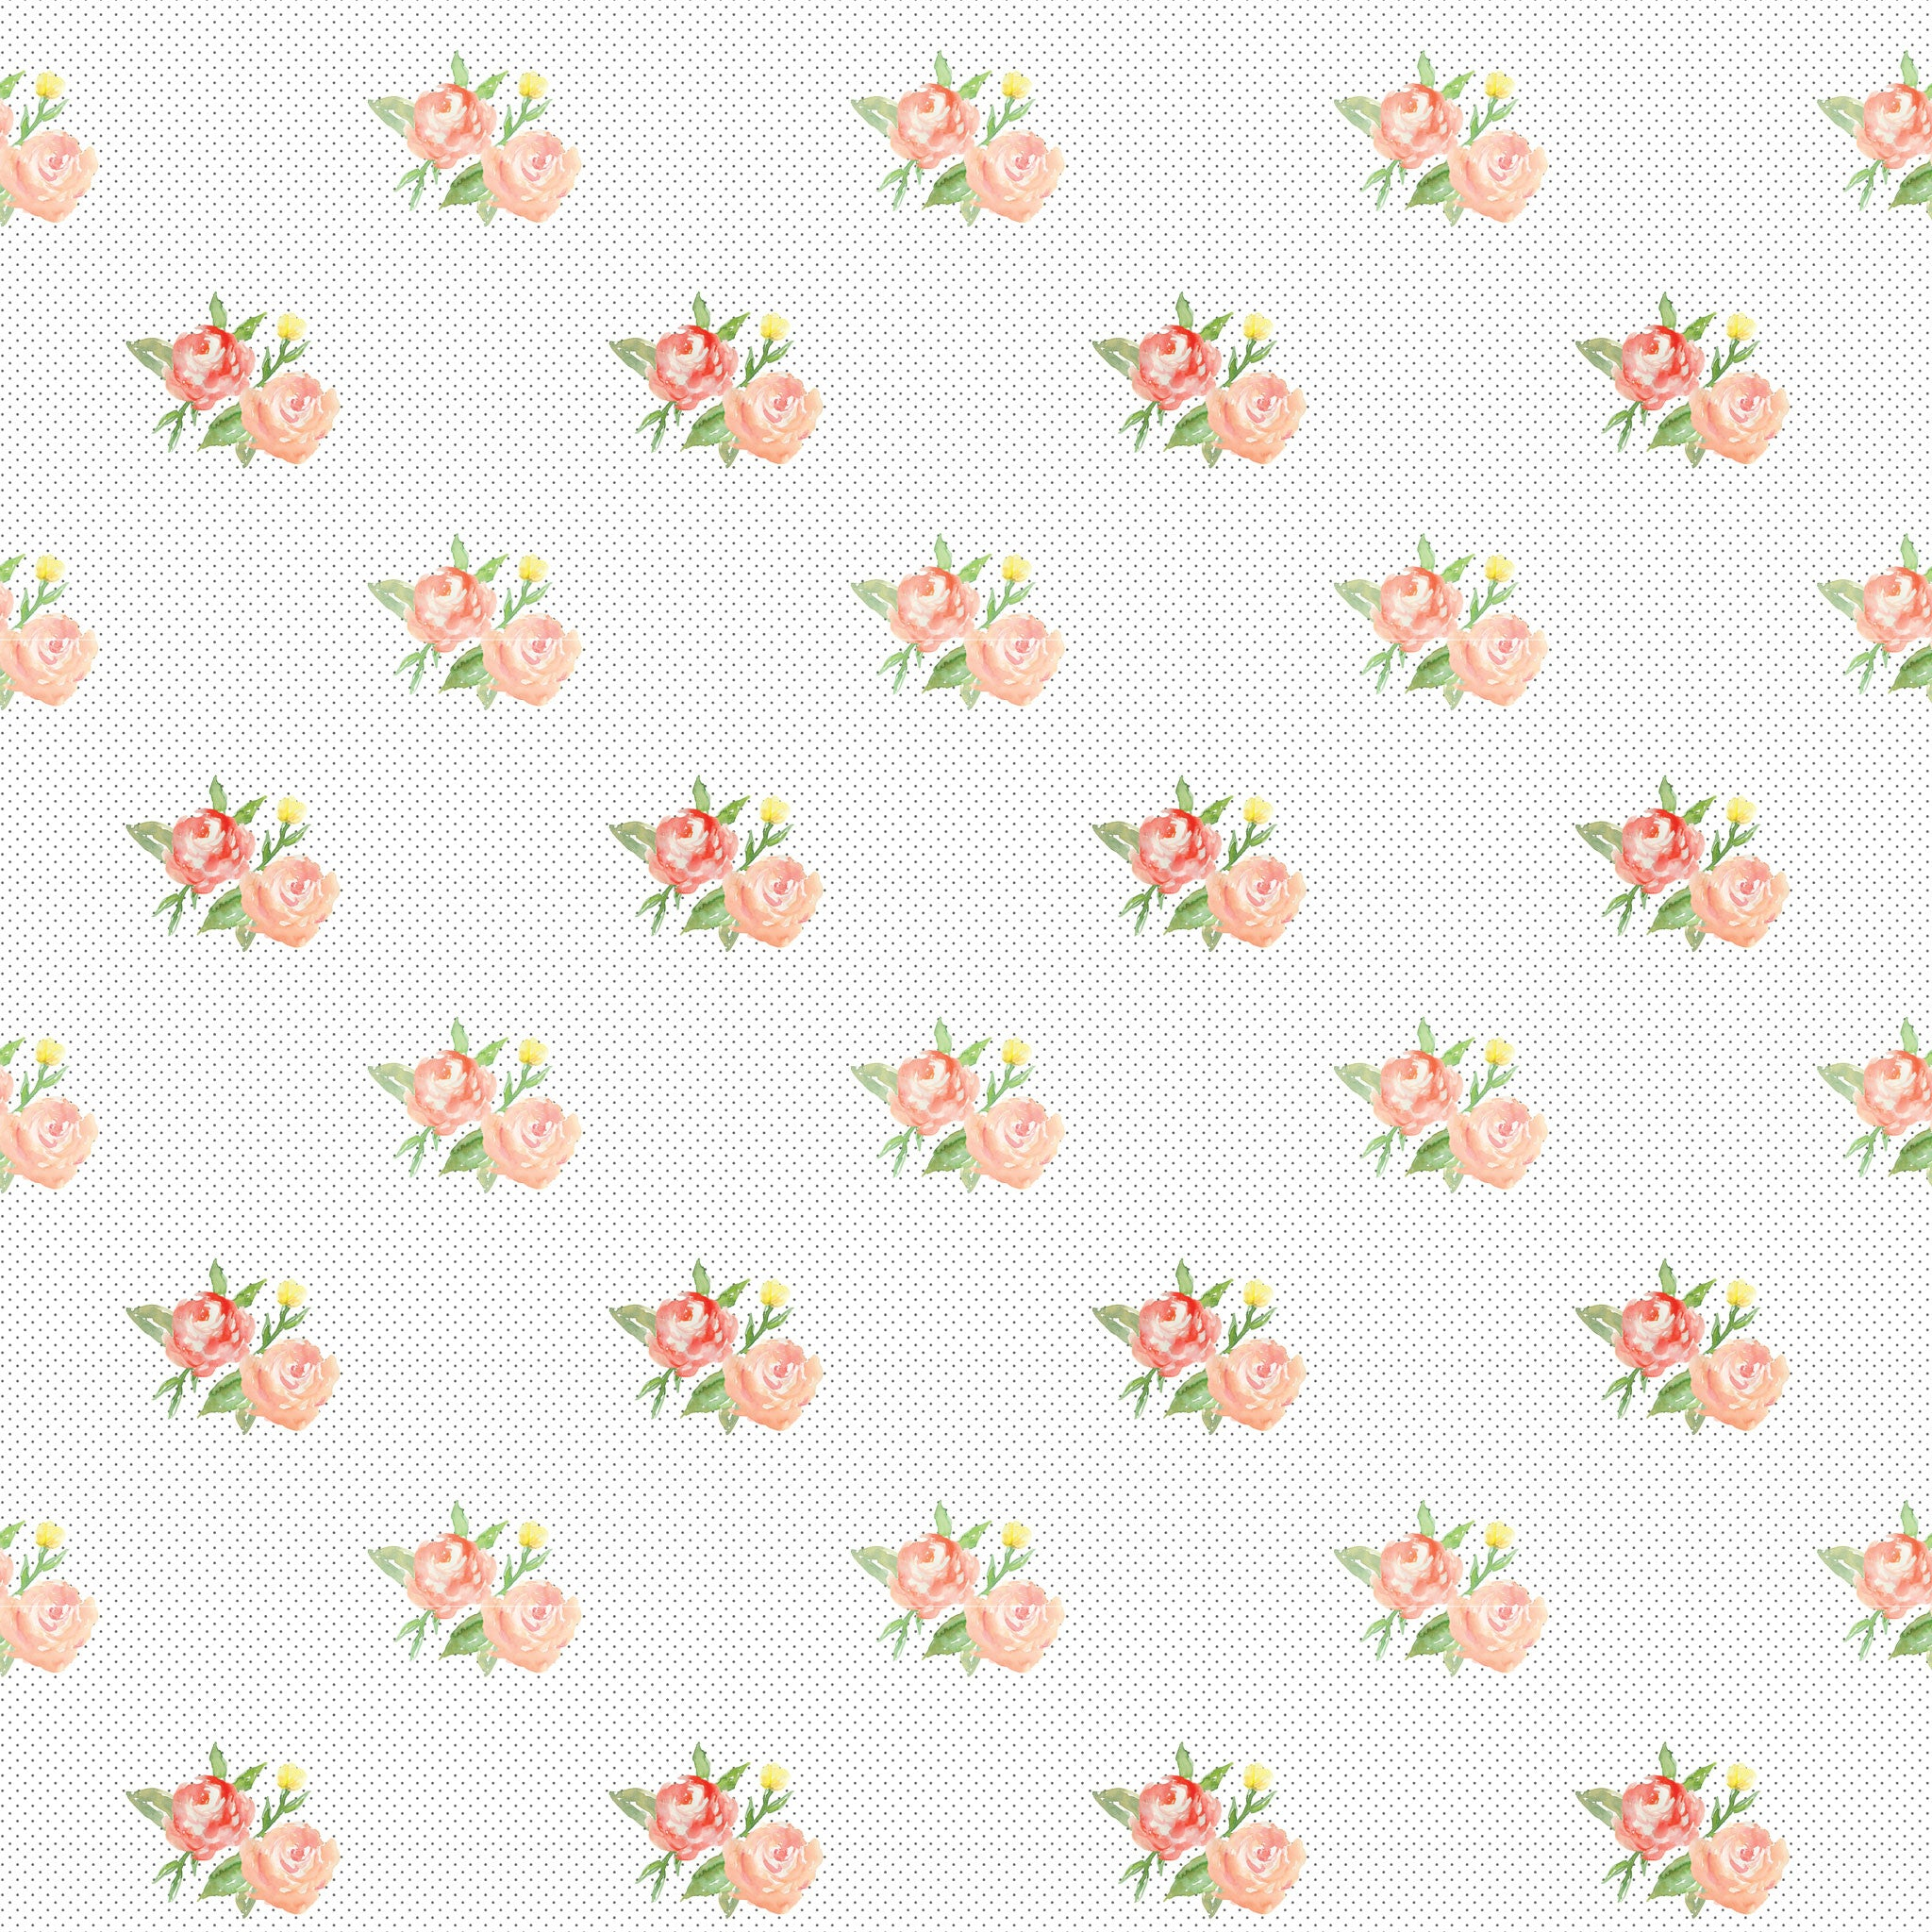 Roses & Dots Photo Backdrop